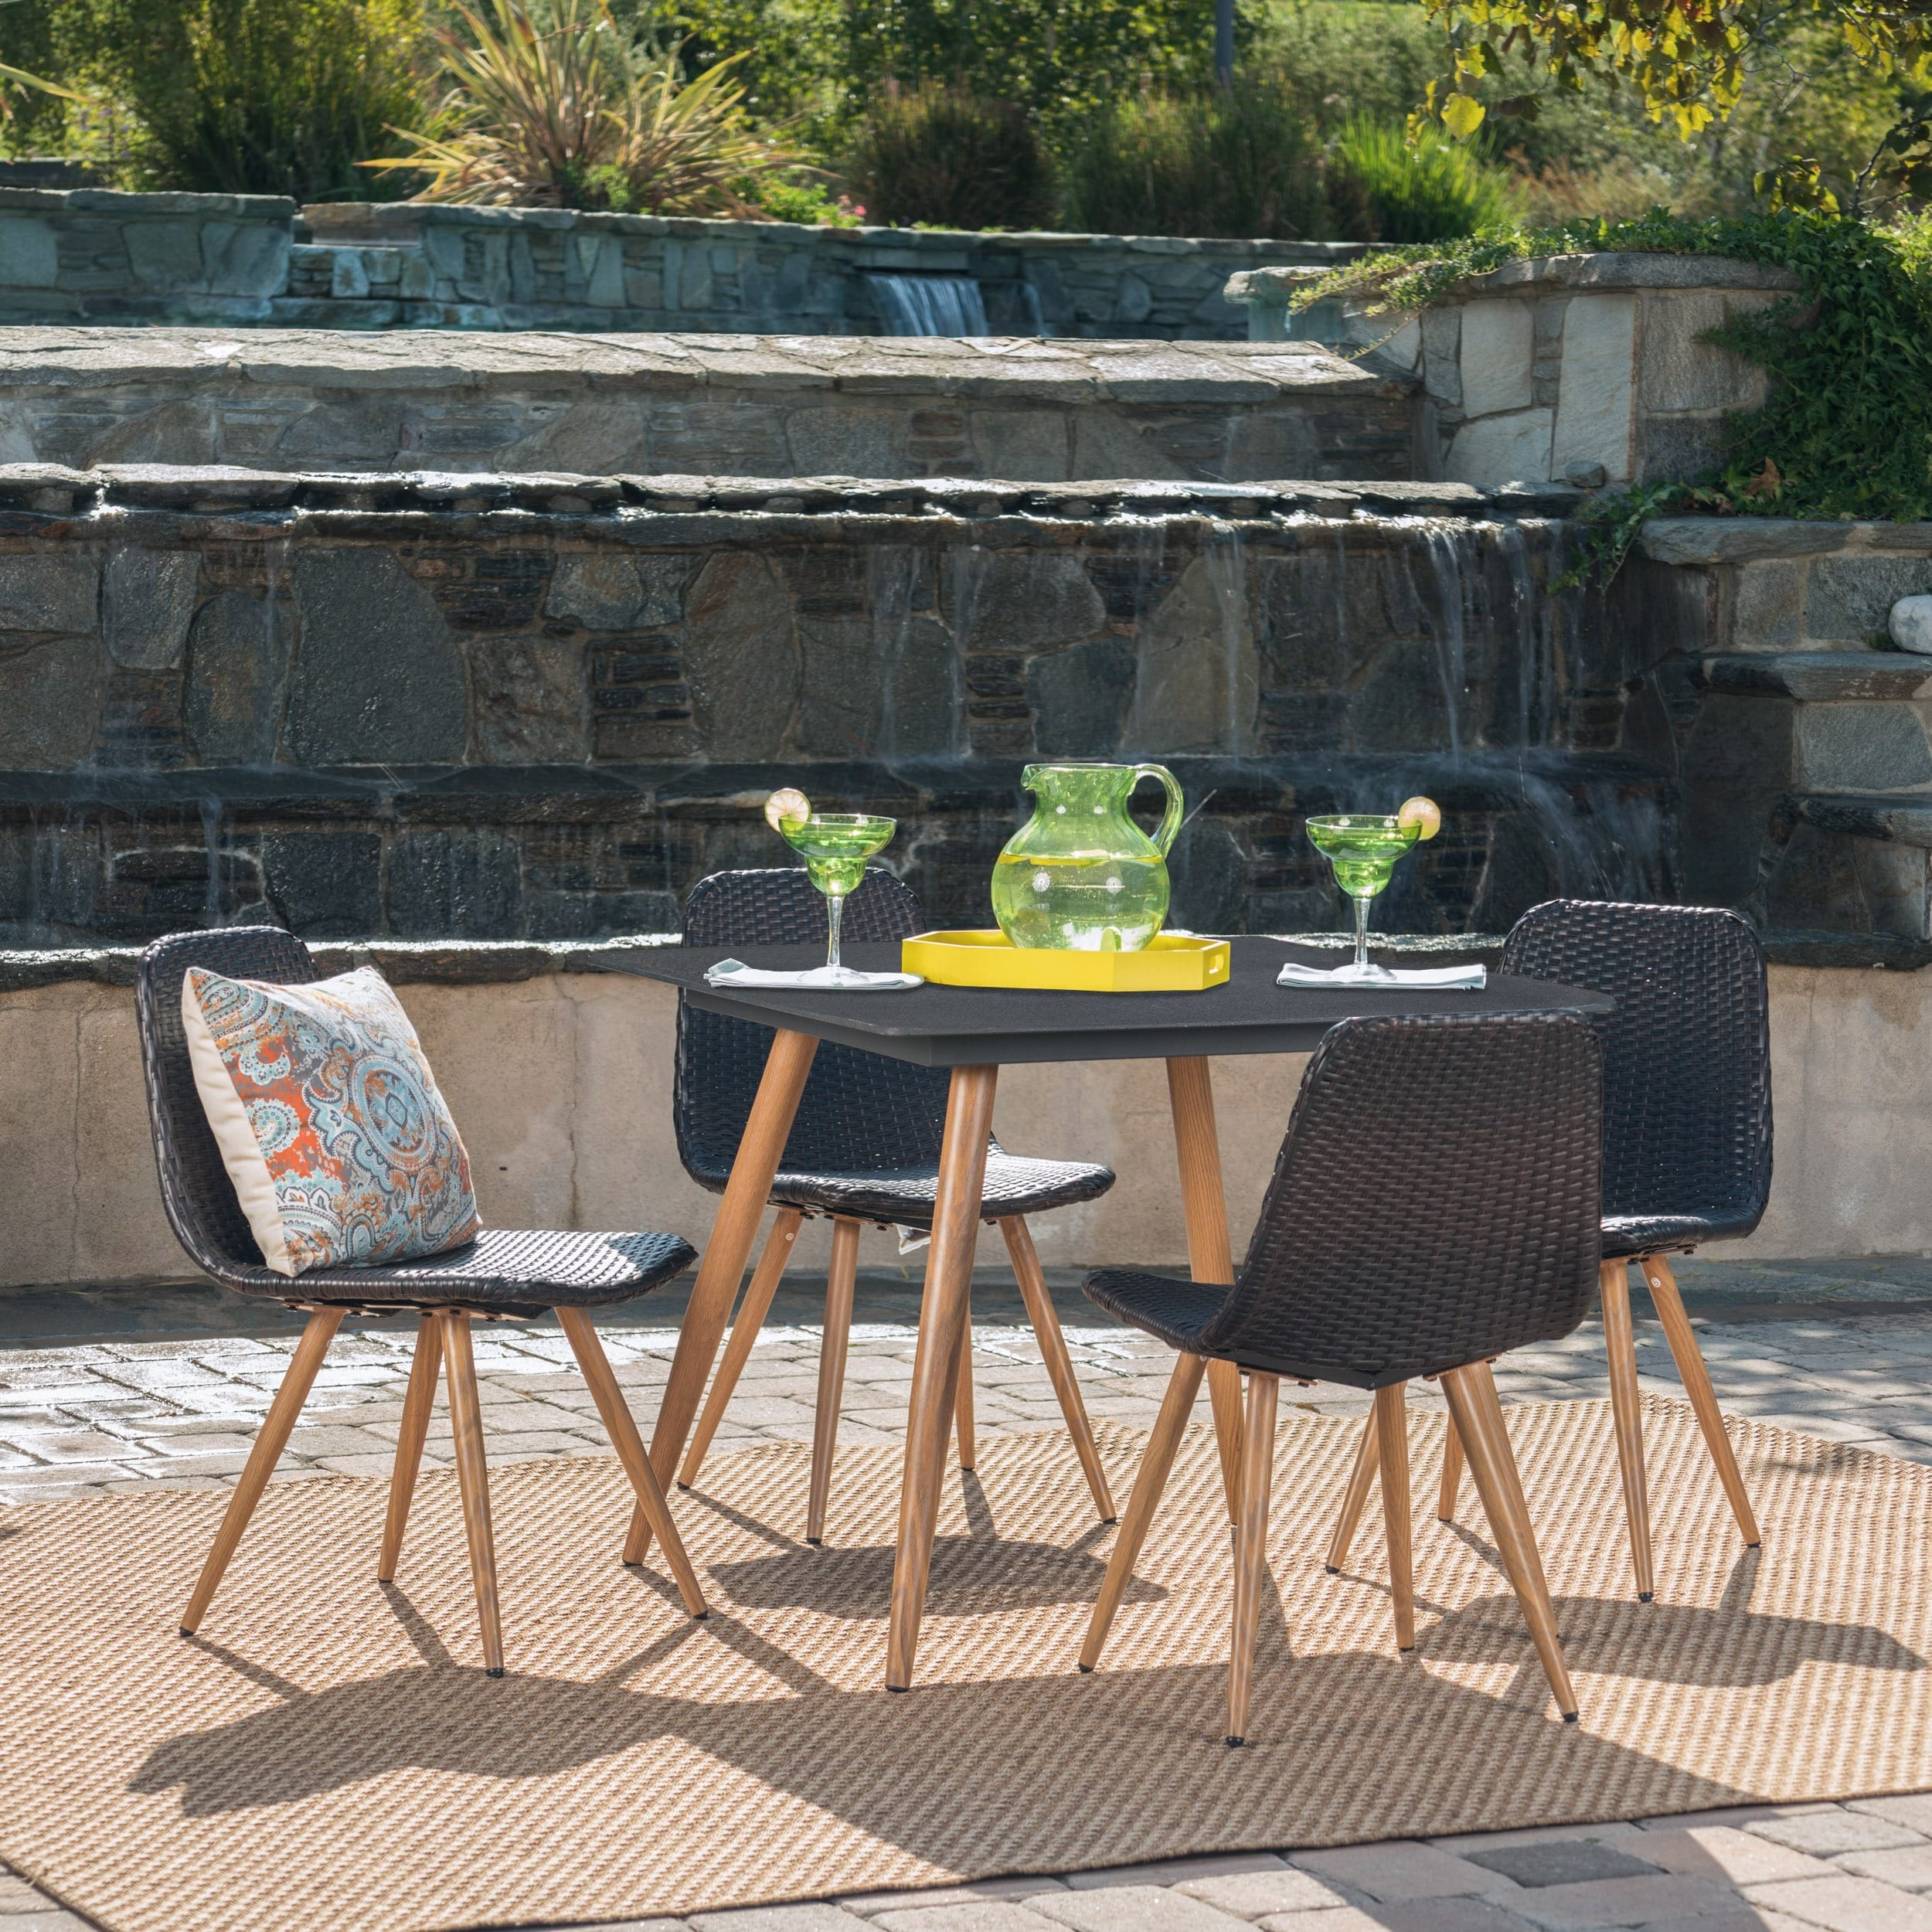 Christopher Knight Home Gila Outdoor 5-Piece Square Wicker Tempered Glass Dining Set by